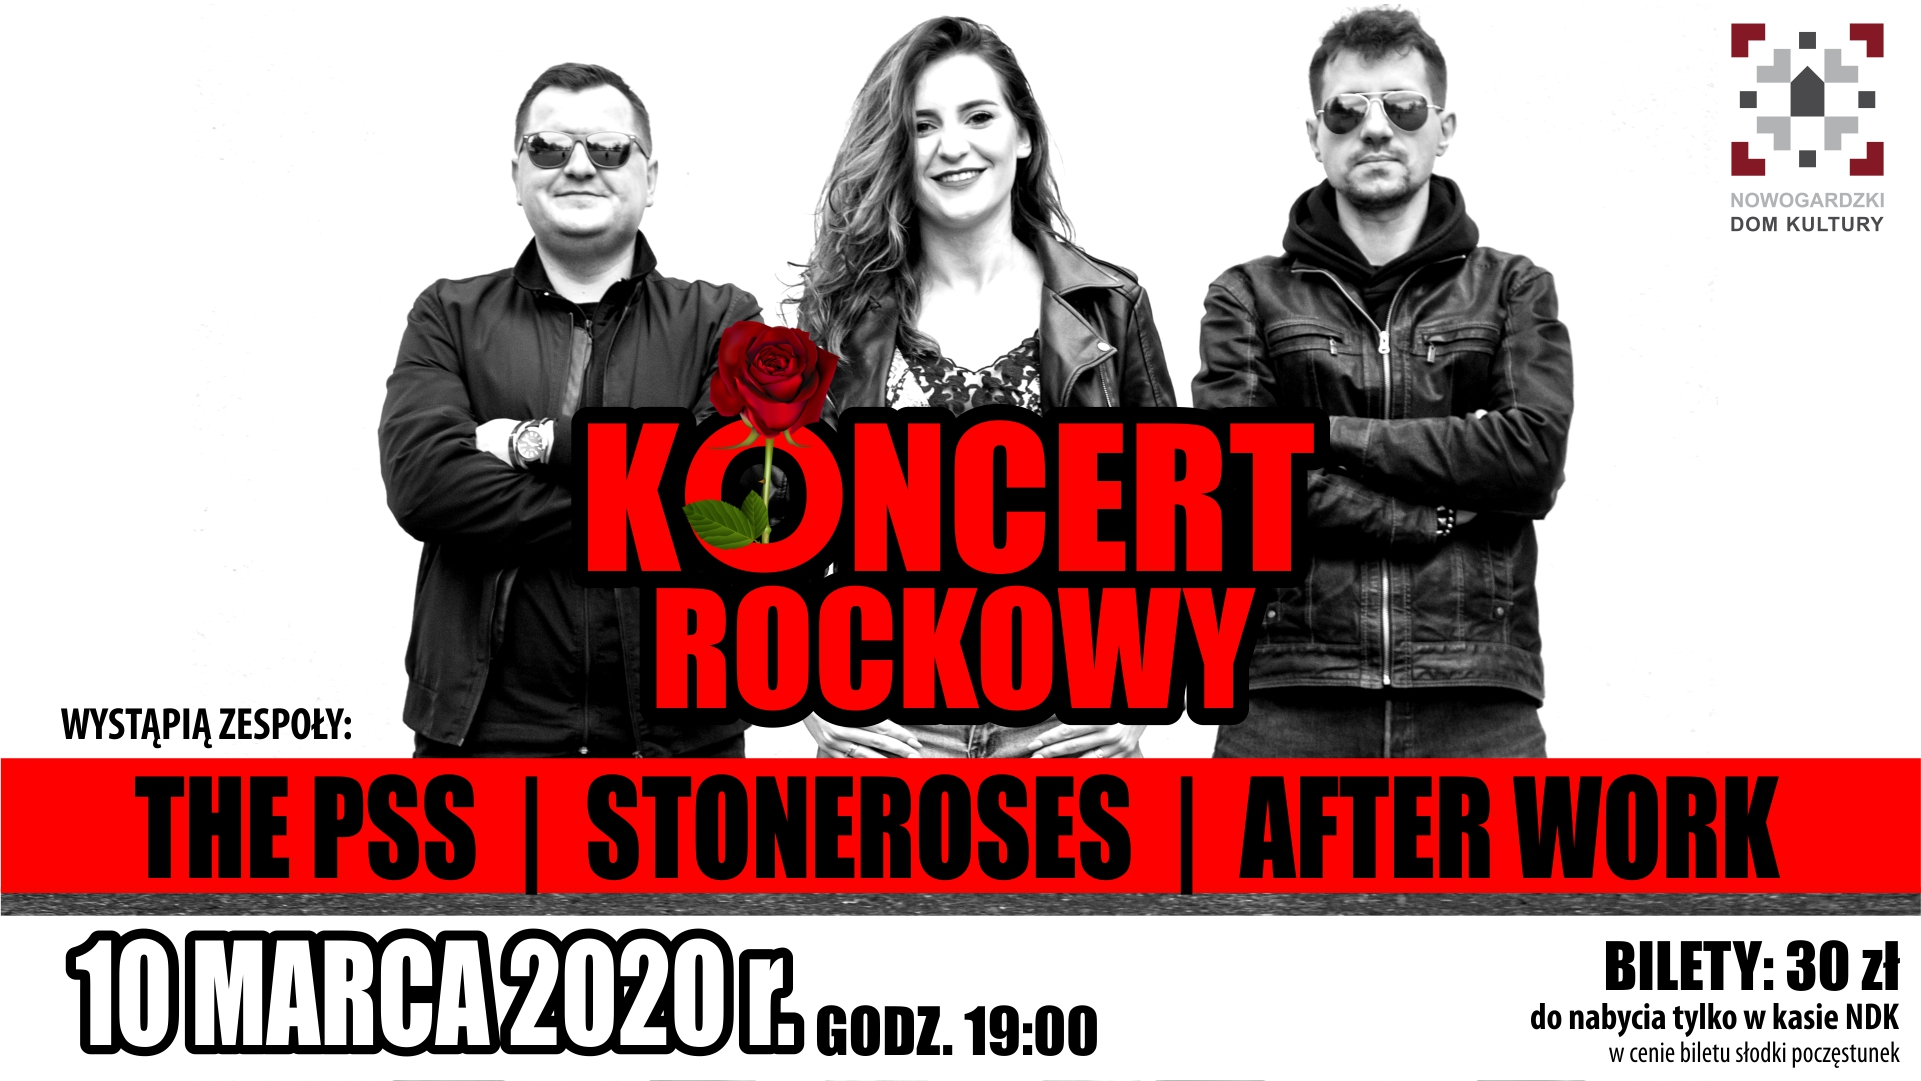 KONCERT | THE PSS, STONEROSES oraz AFTER WORK!